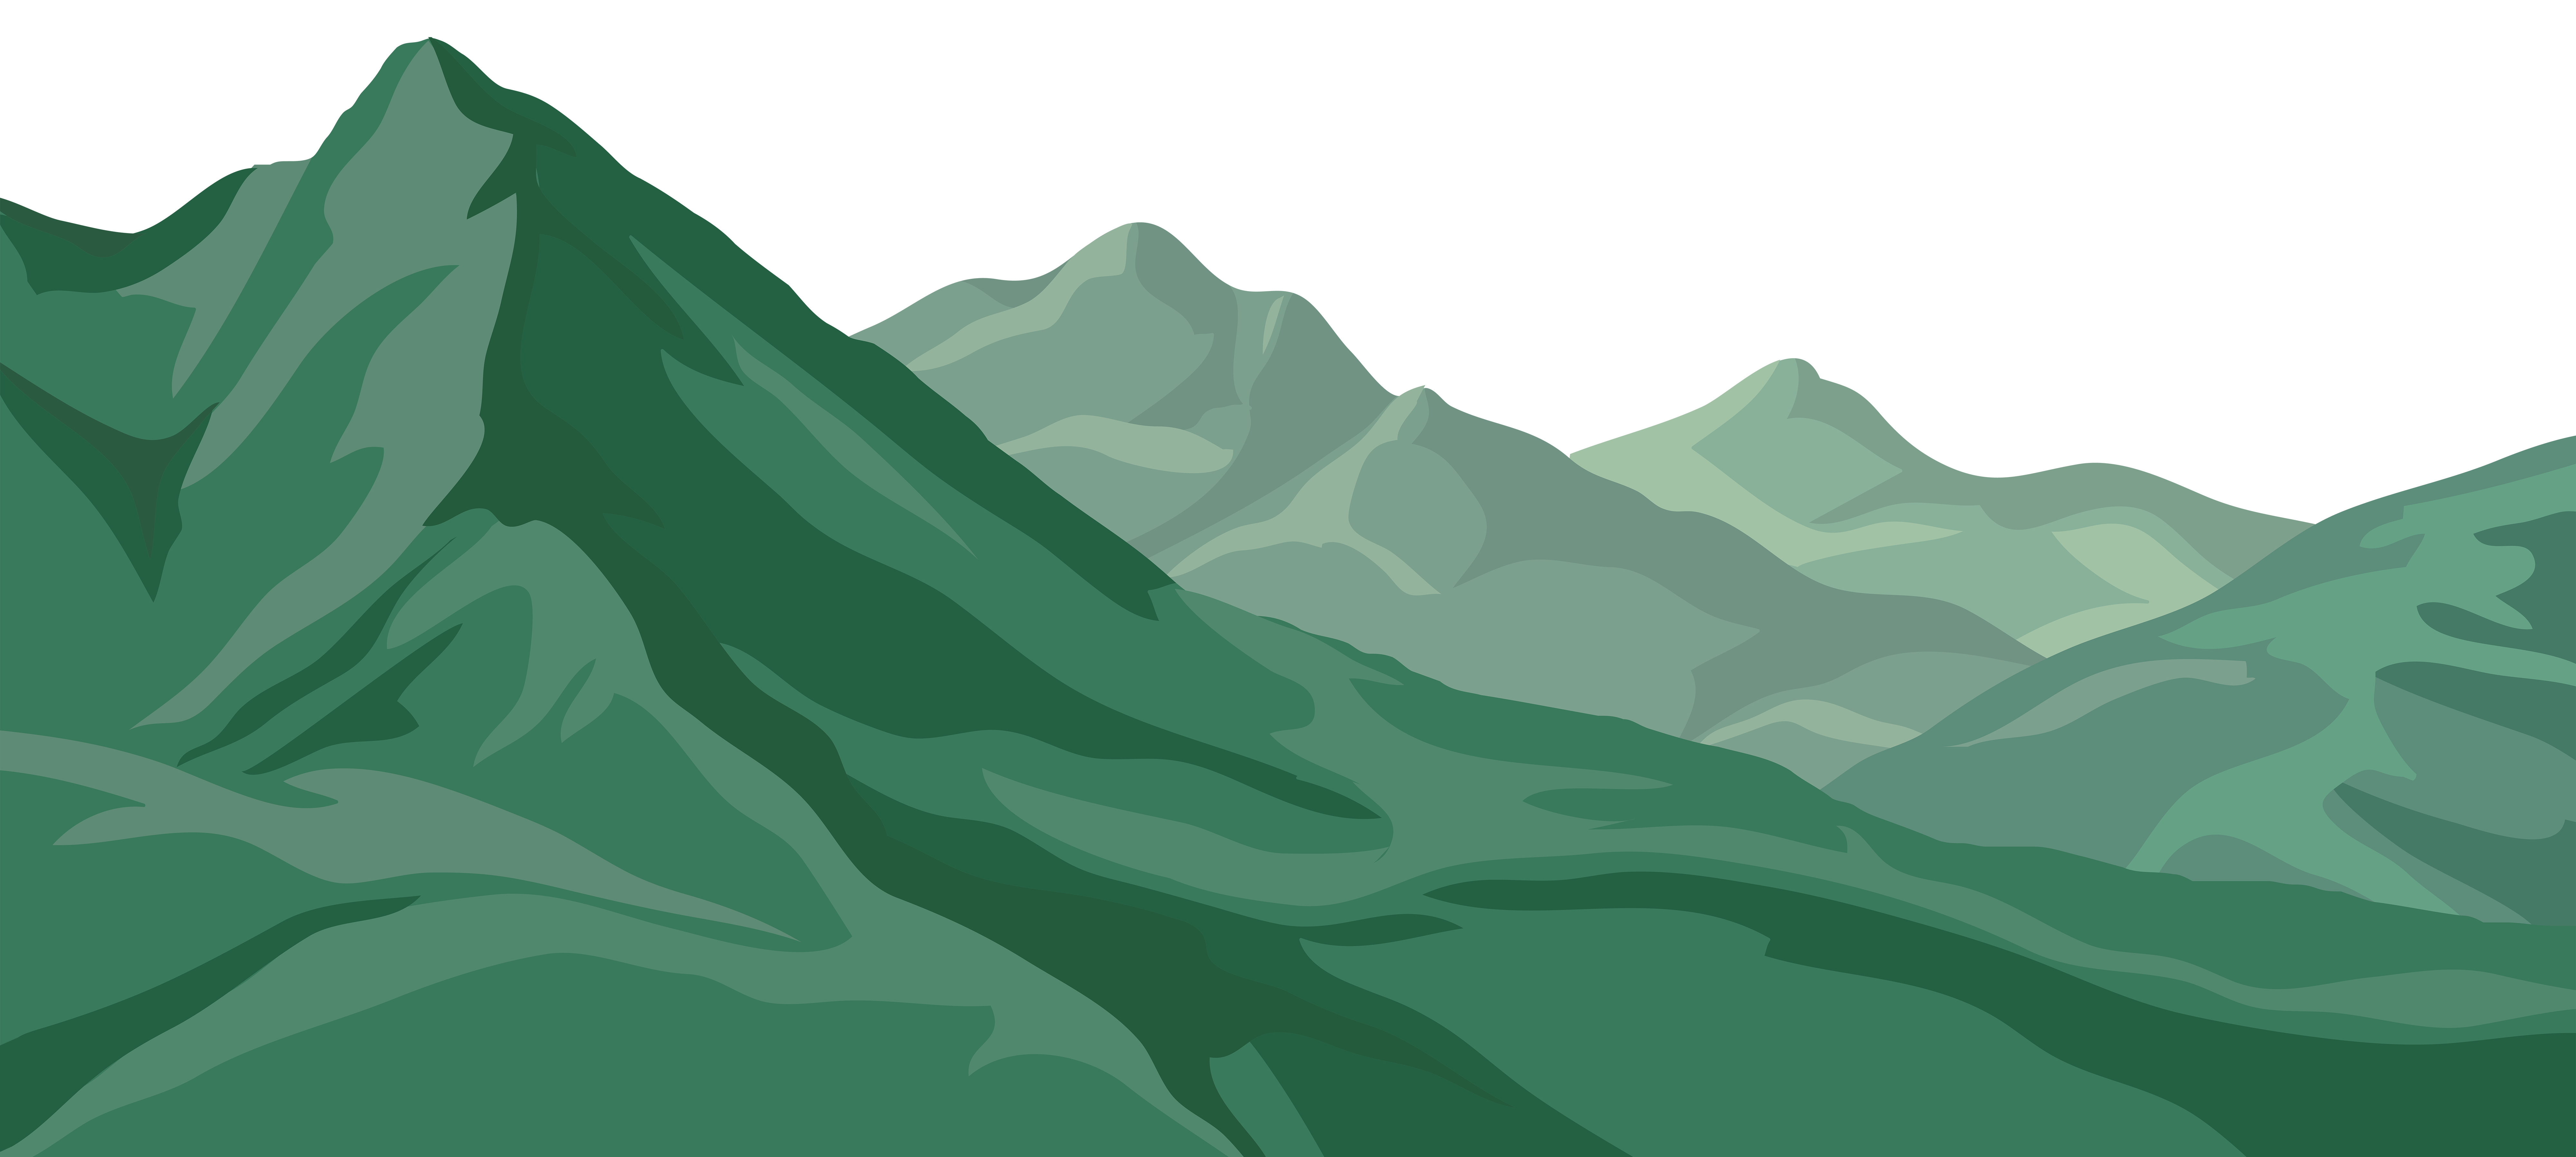 Mountain Png Clip Art Image Gallery Yopriceville High Quality Images And Transparent Png Free Clipart Gambar Png